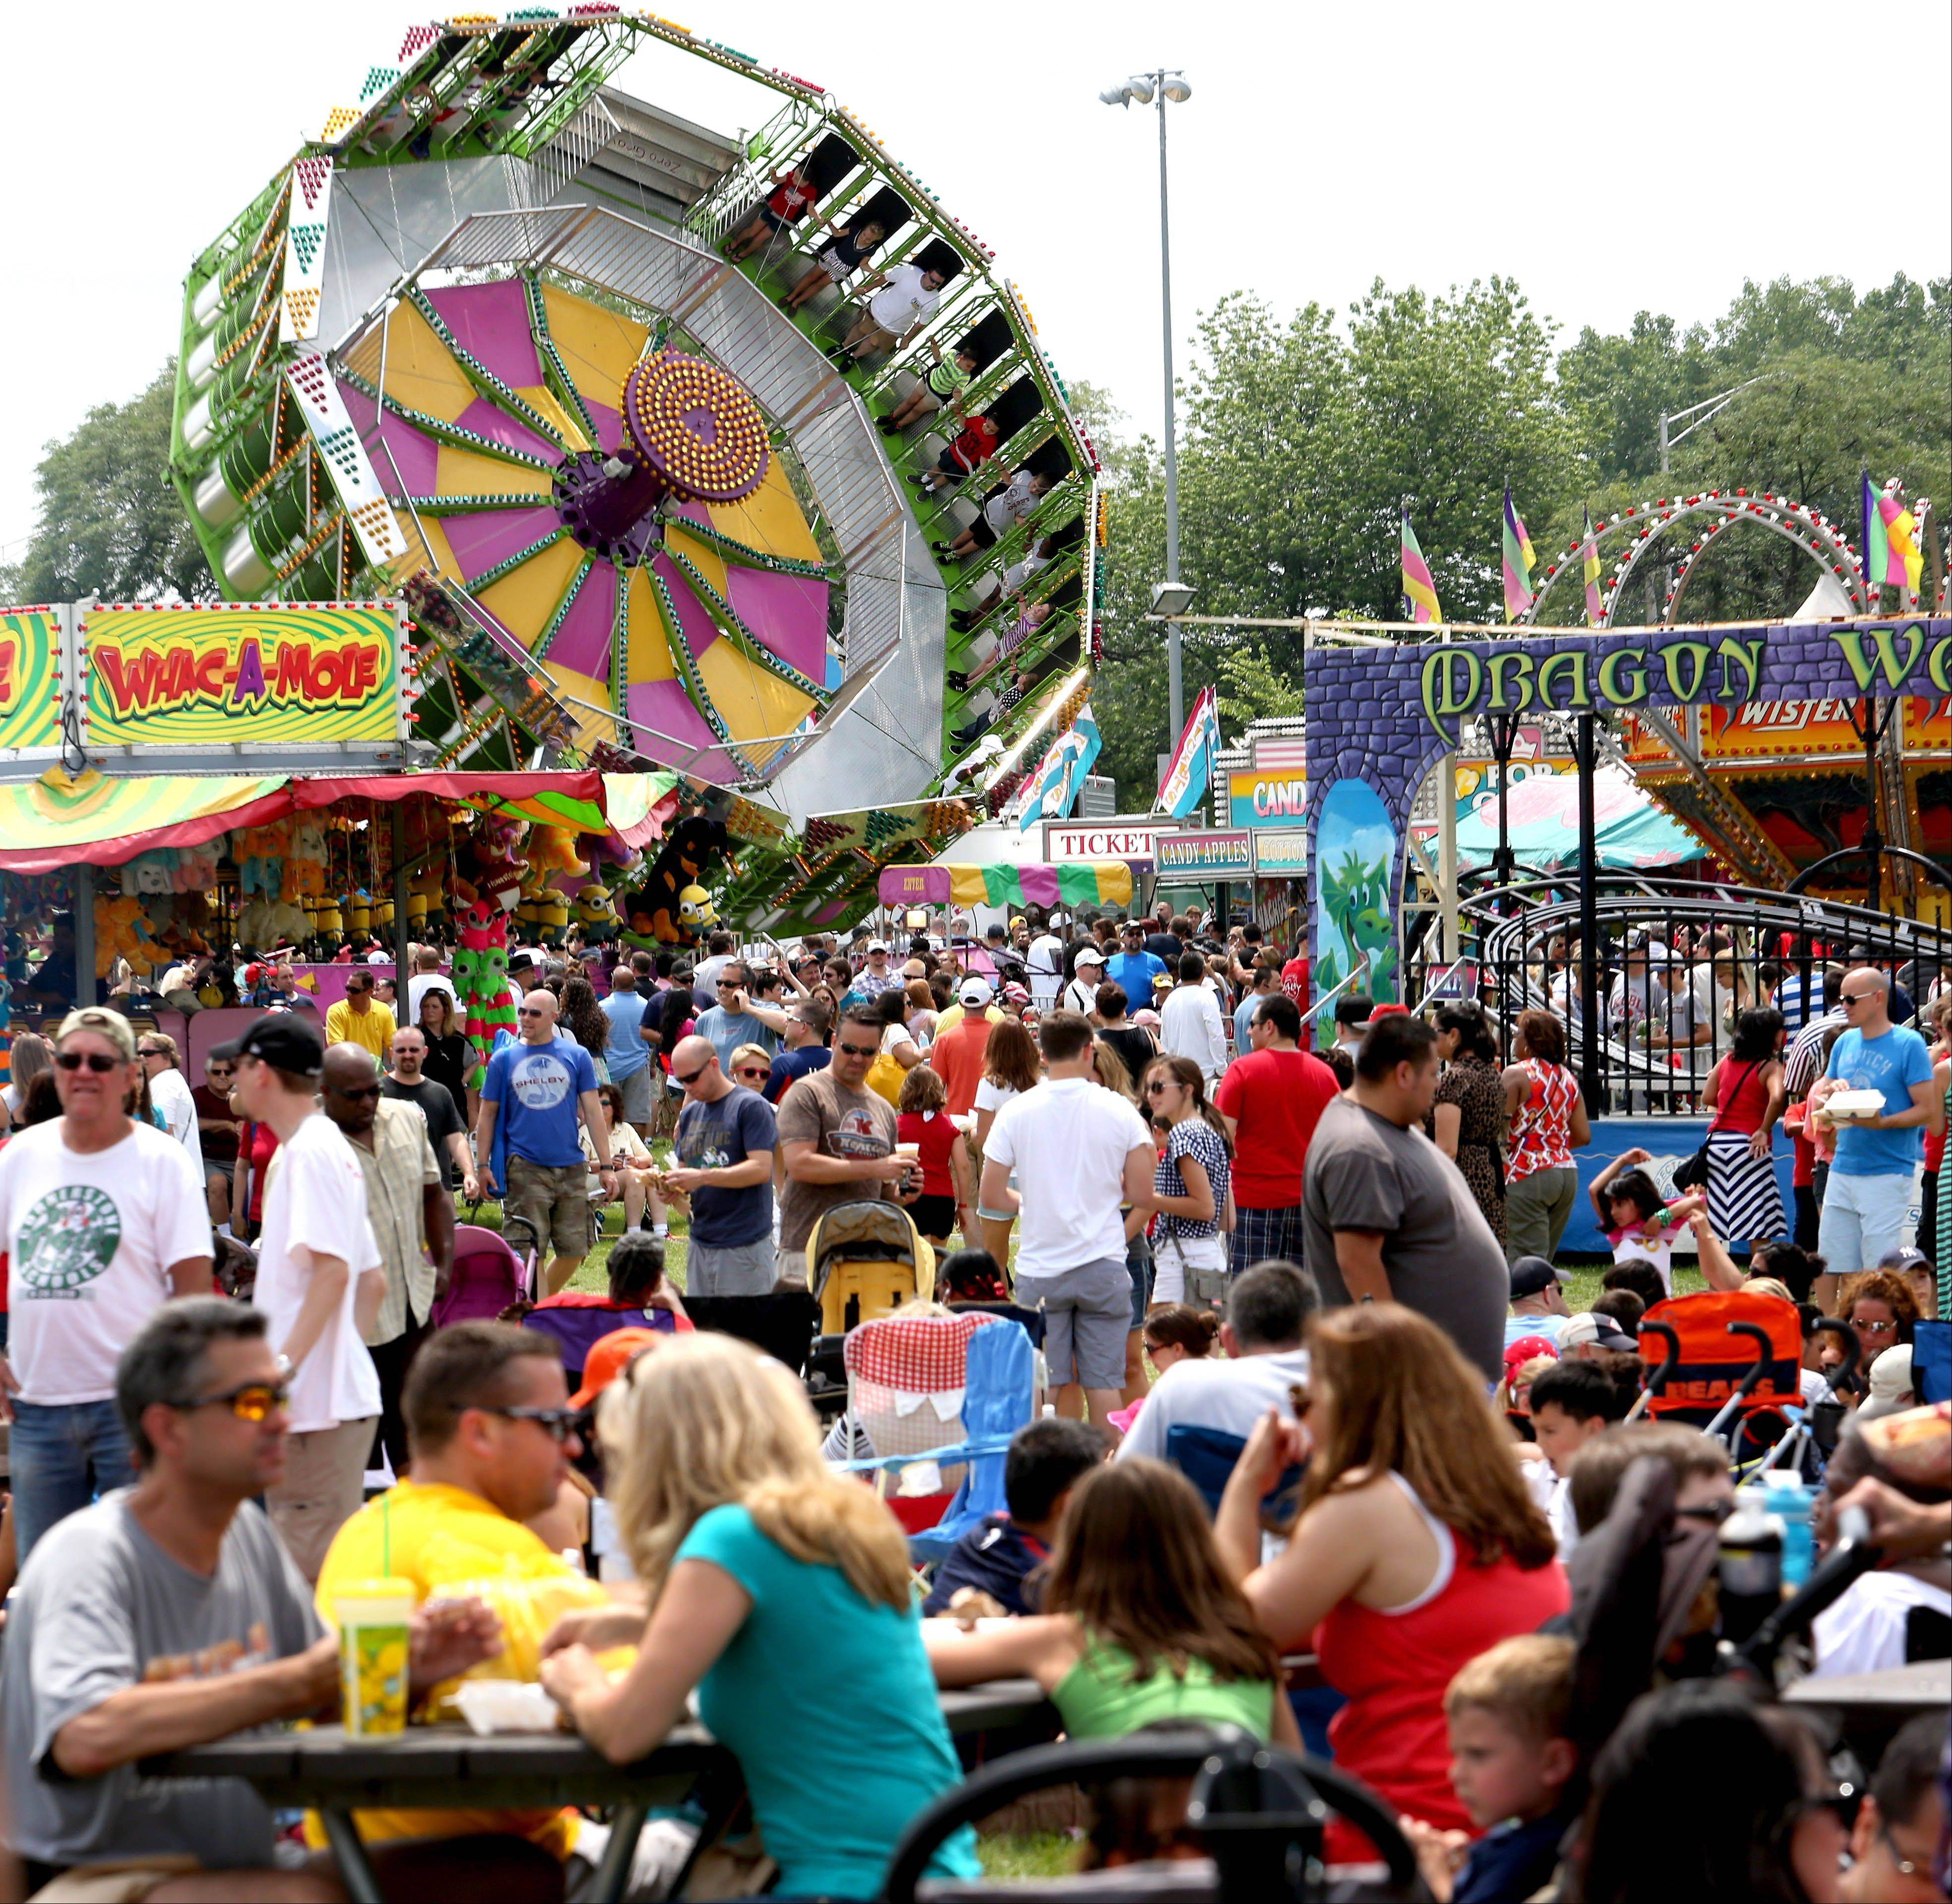 Crowds enjoy ribs, music and carnival rides during Ribfest in Naperville on Thursday.